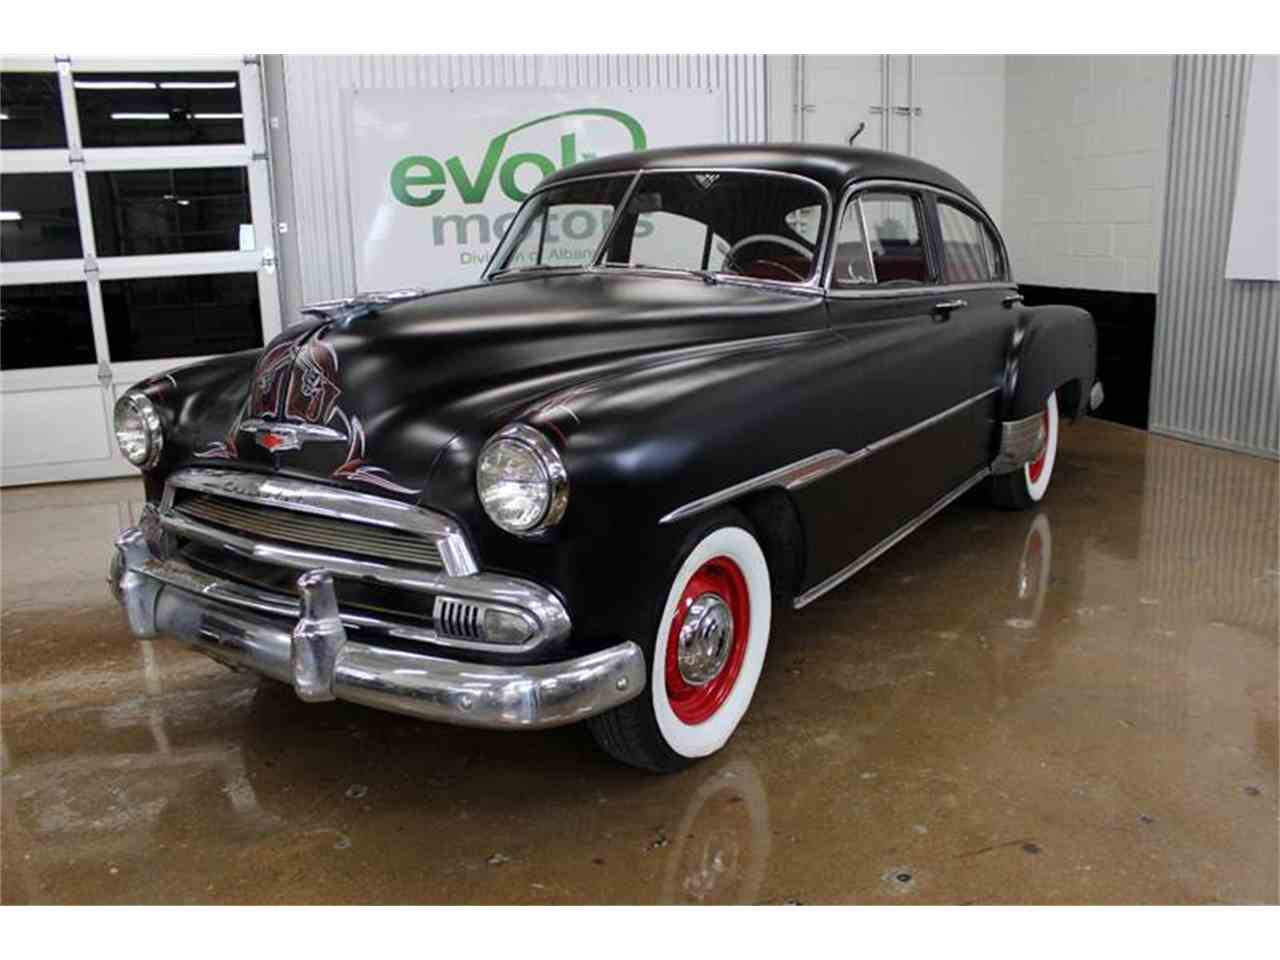 All Chevy 1951 chevrolet fleetline : 1951 Chevrolet Fleetline for Sale | ClassicCars.com | CC-978400